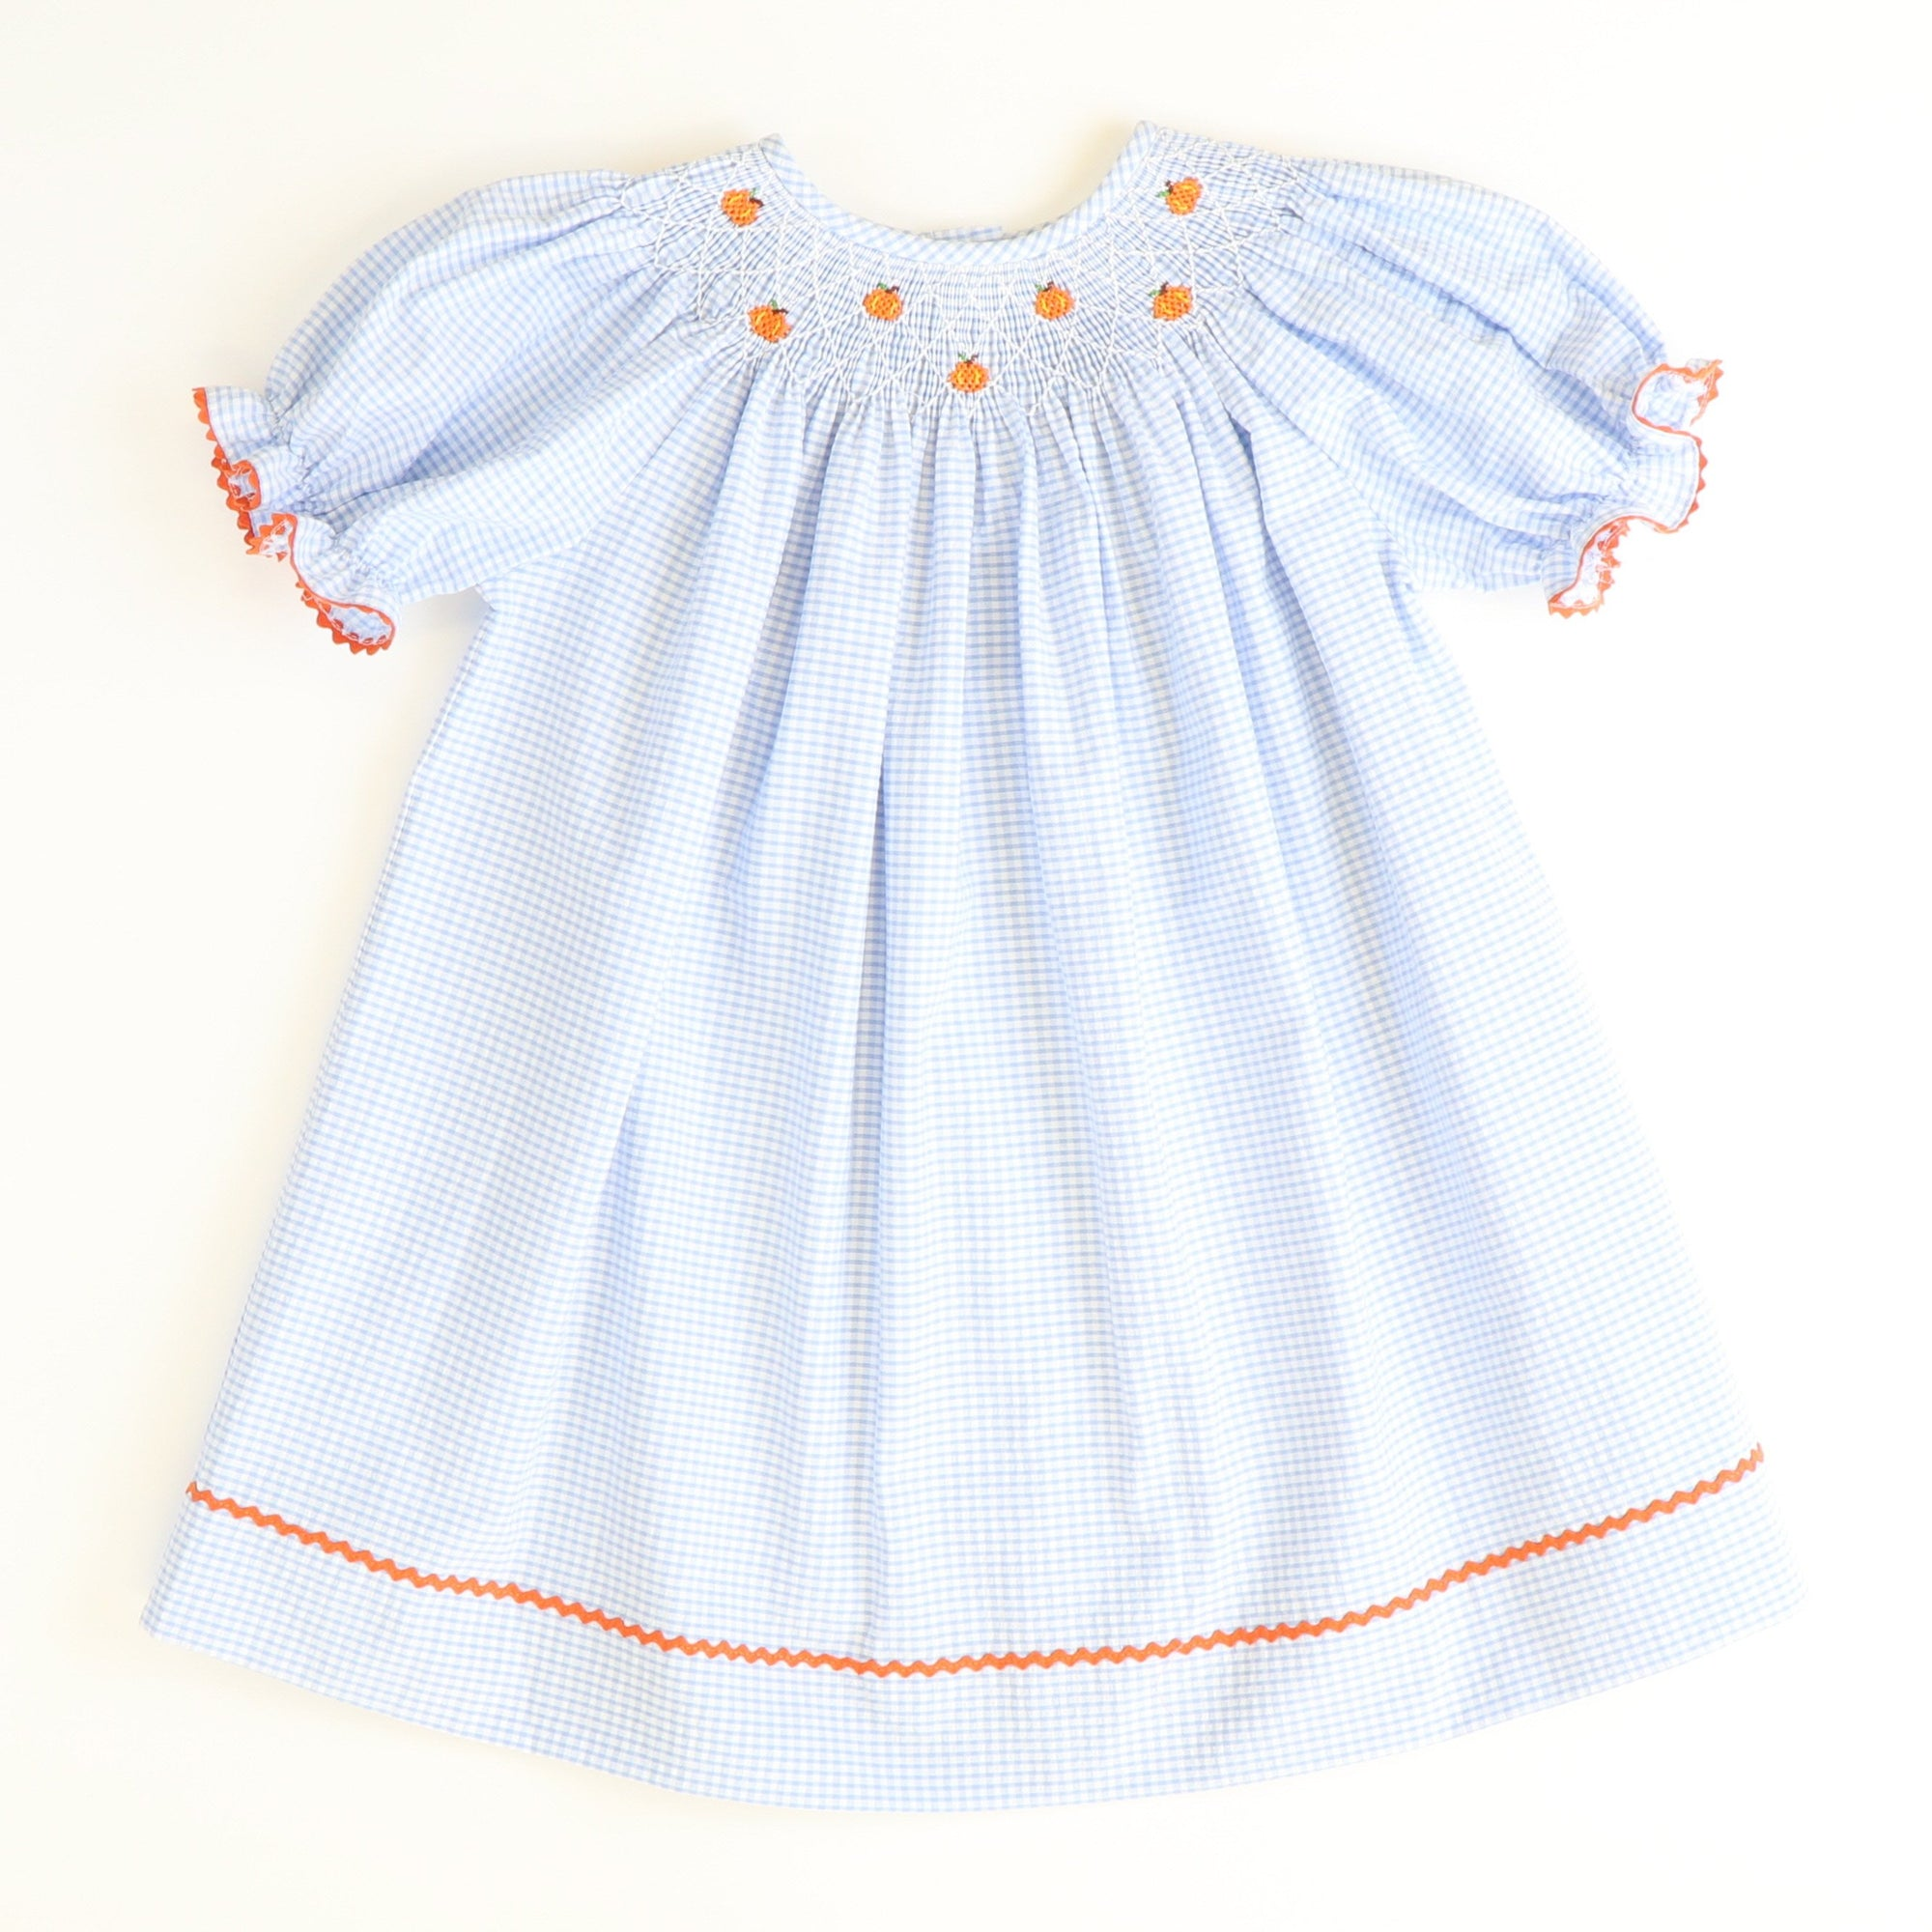 Smocked Tiny Pumpkins Bishop - Light Blue Mini Check Seersucker